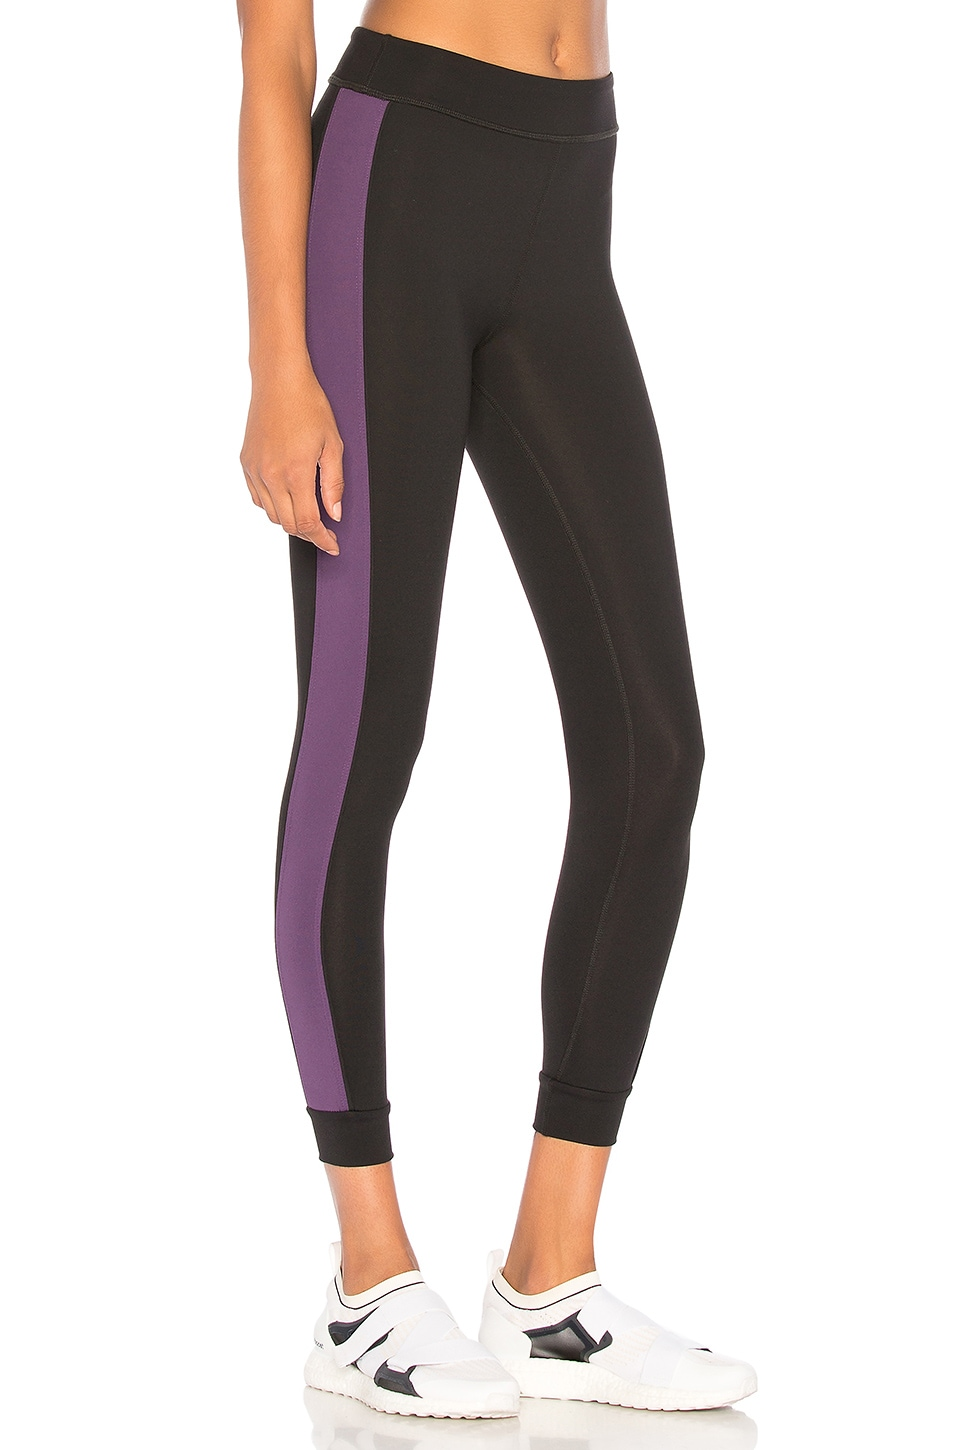 YEAR OF OURS Fall Track Legging in Black & Amethyst